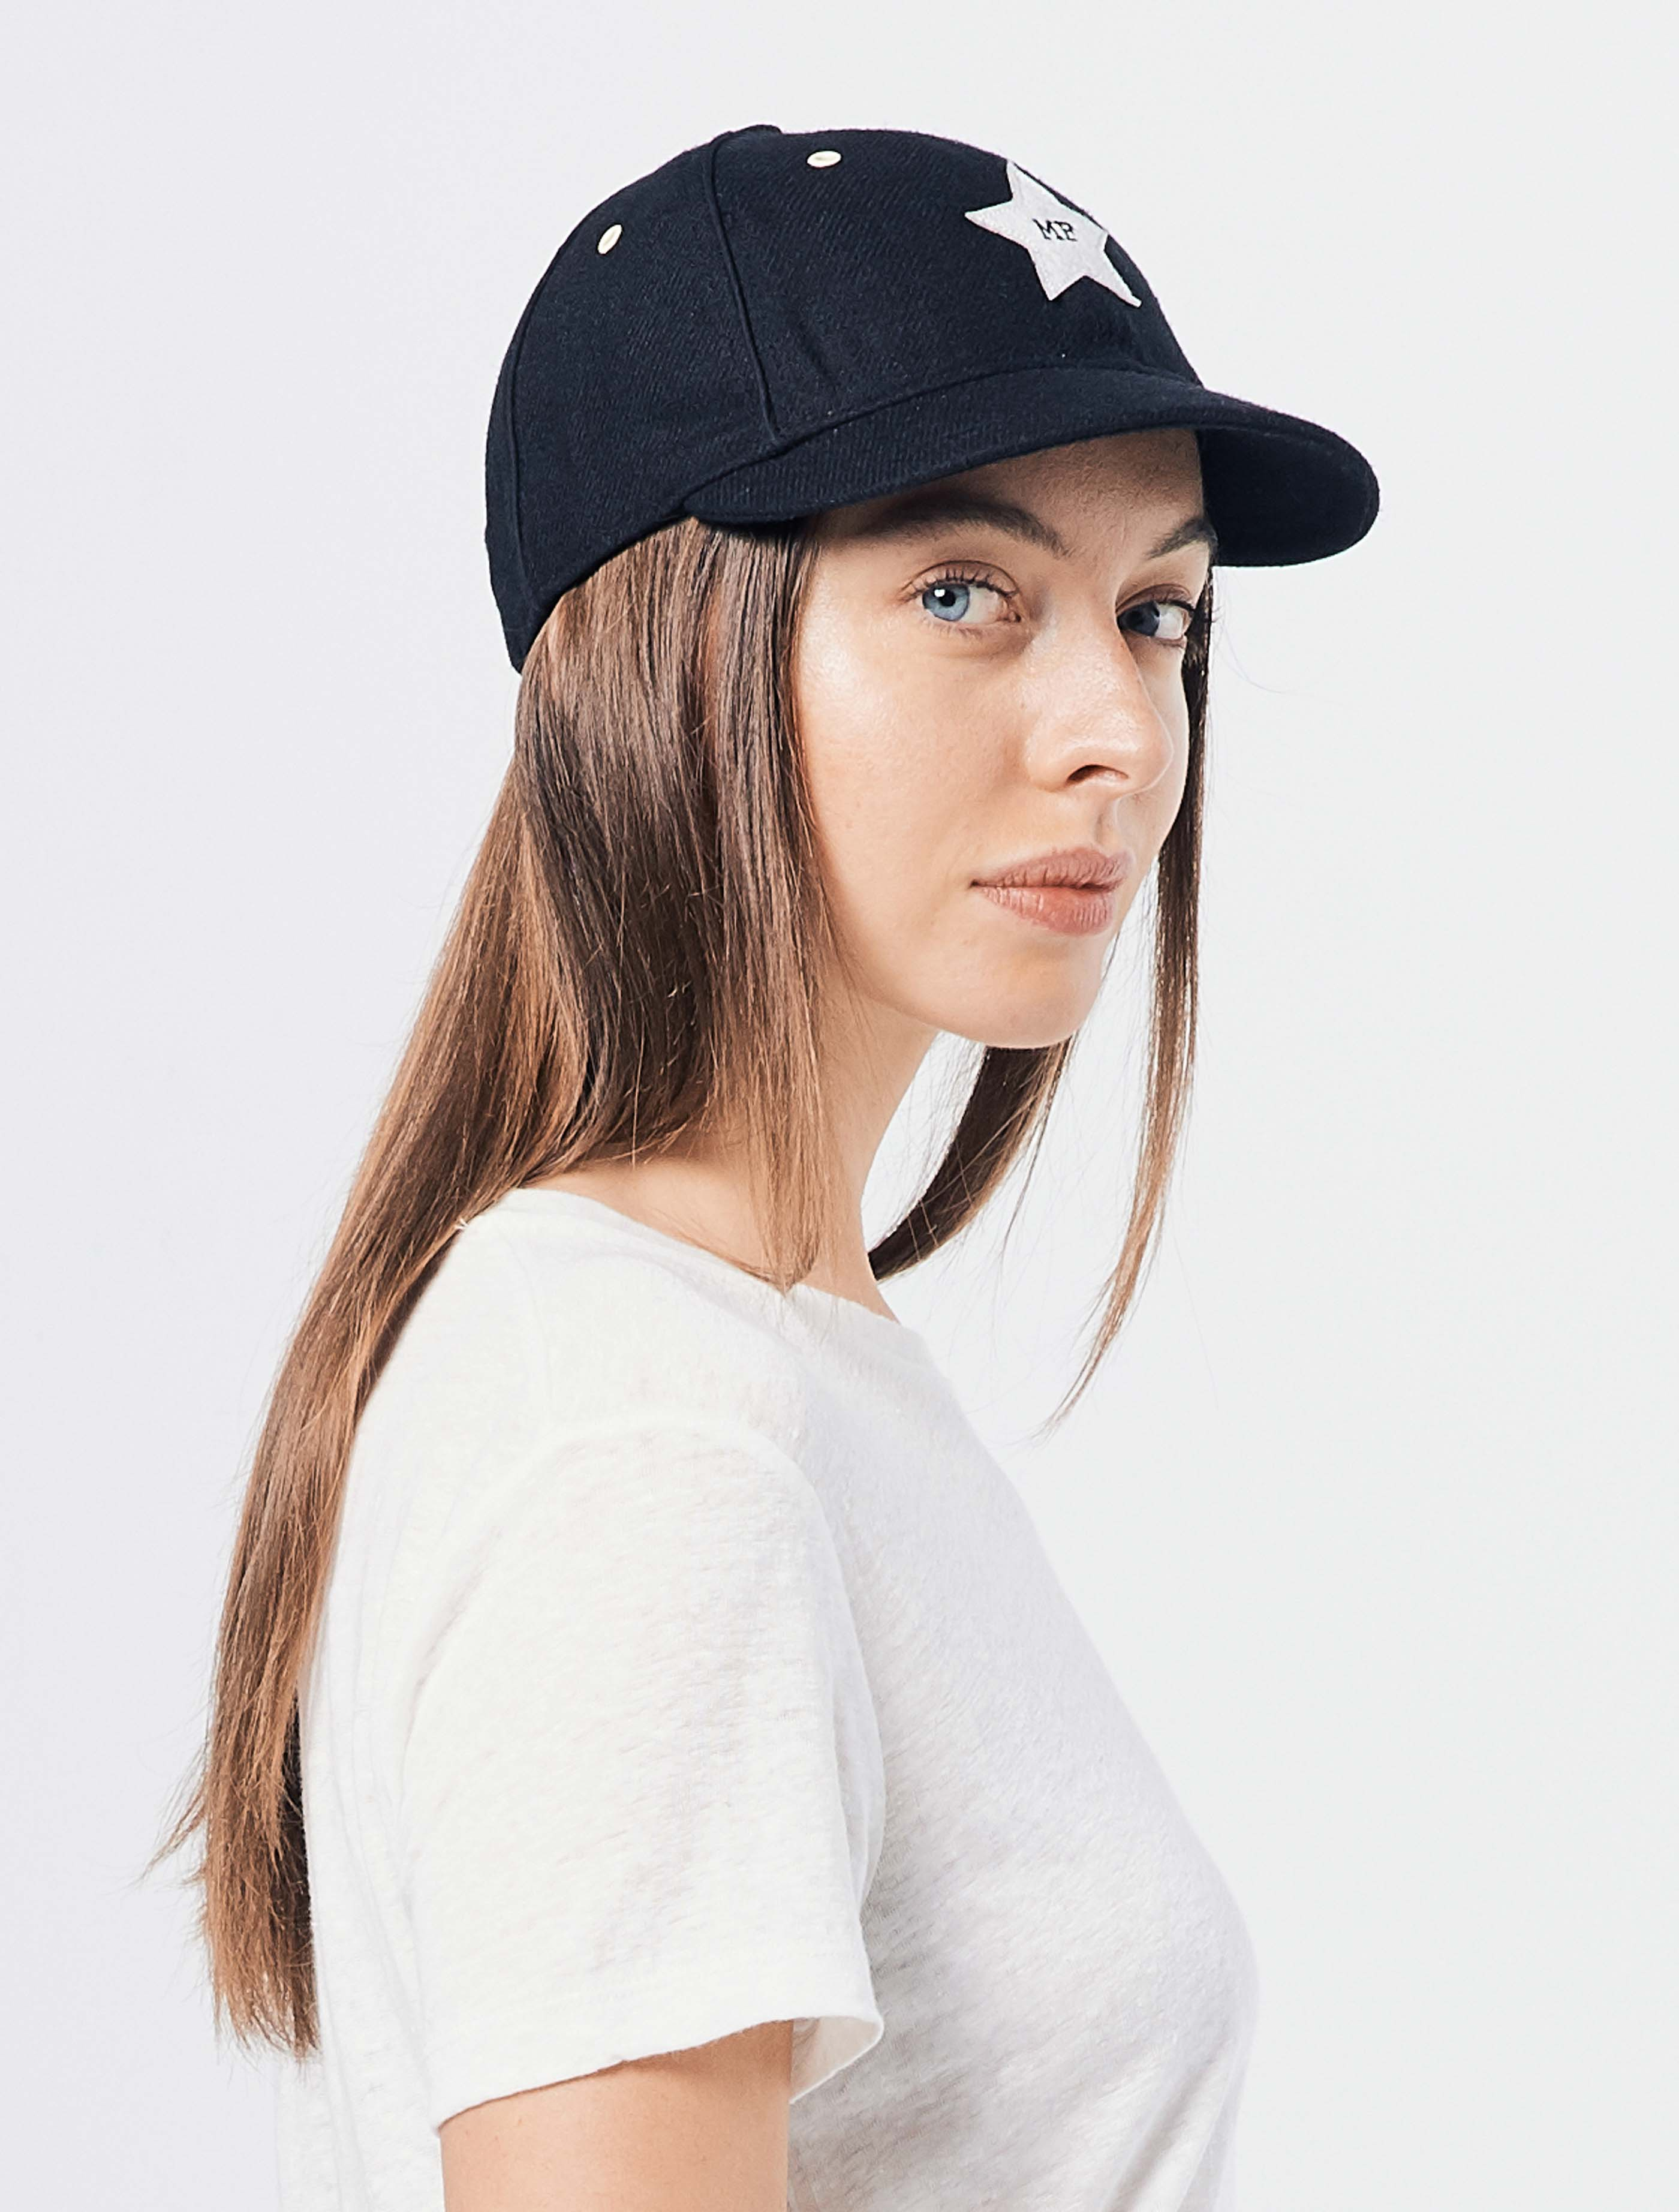 e464fad5e87 Headwear - mf people - minimal skincare   apparel